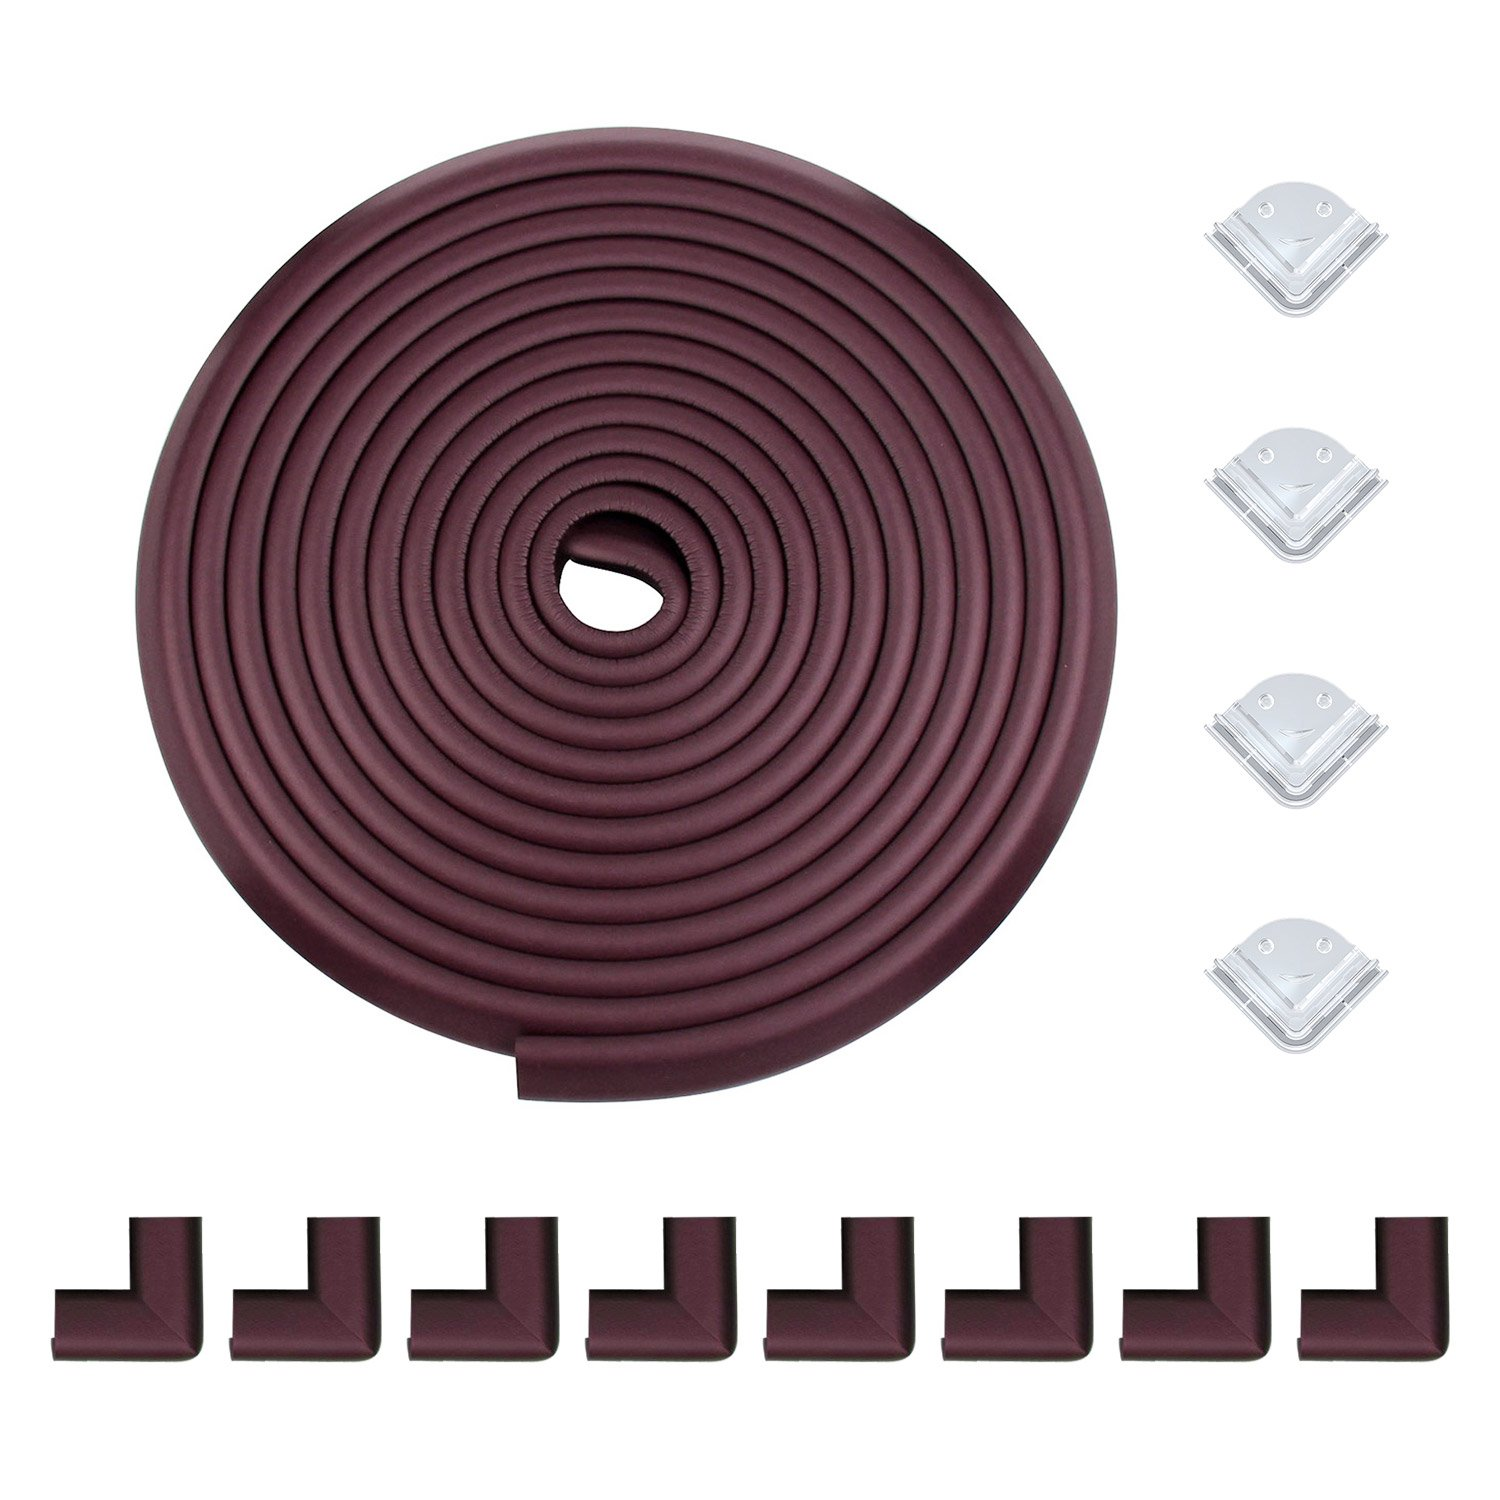 Meiqicool Safe Edge and Corner Guard Set | Furniture Edge Safety Bumpers for Baby | Cushion Foam Protector Kit for Toddlers | 20ft Edge + 12 Corners, Brown, F200804Z